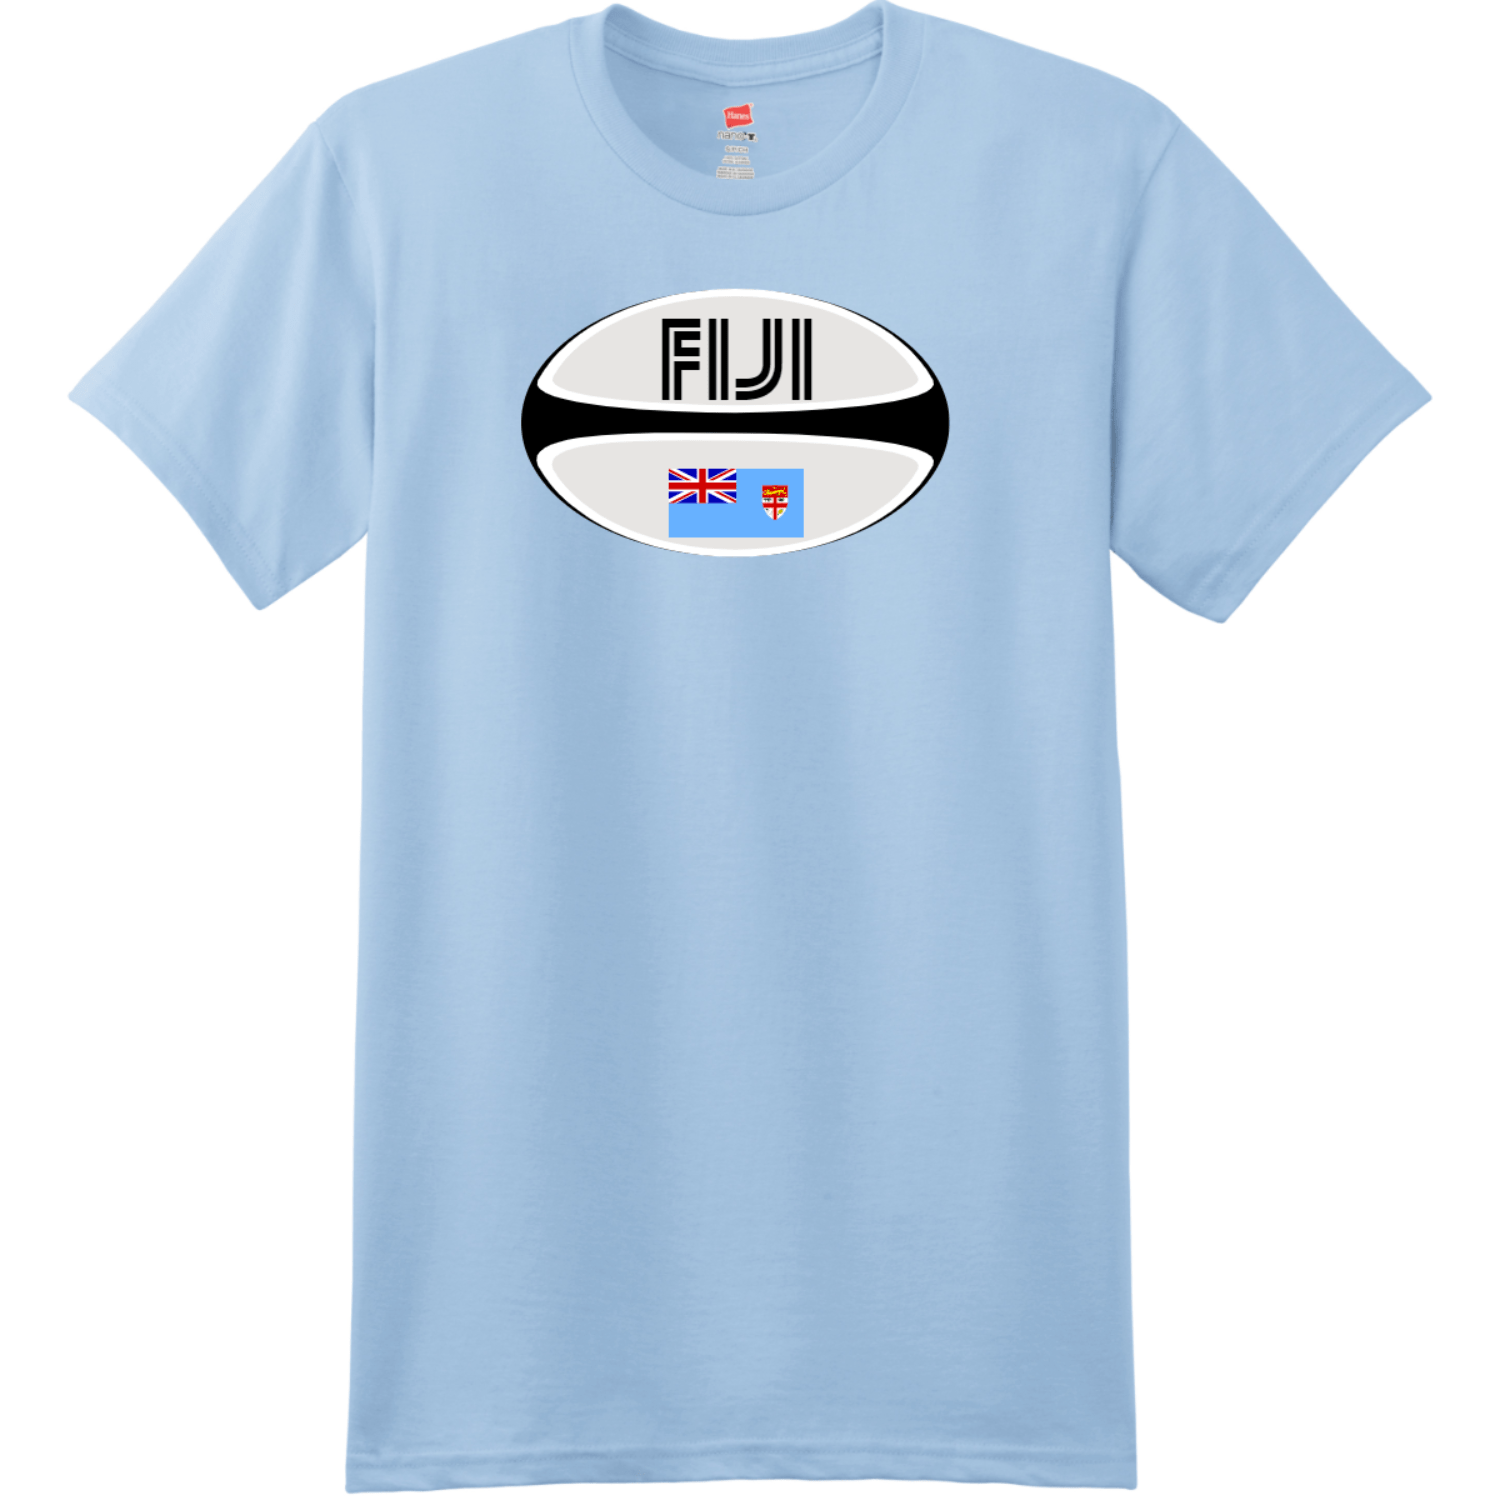 Fiji Rugby Ball T Shirt Light Blue Hanes Nano 4980 Ringspun Cotton T Shirt